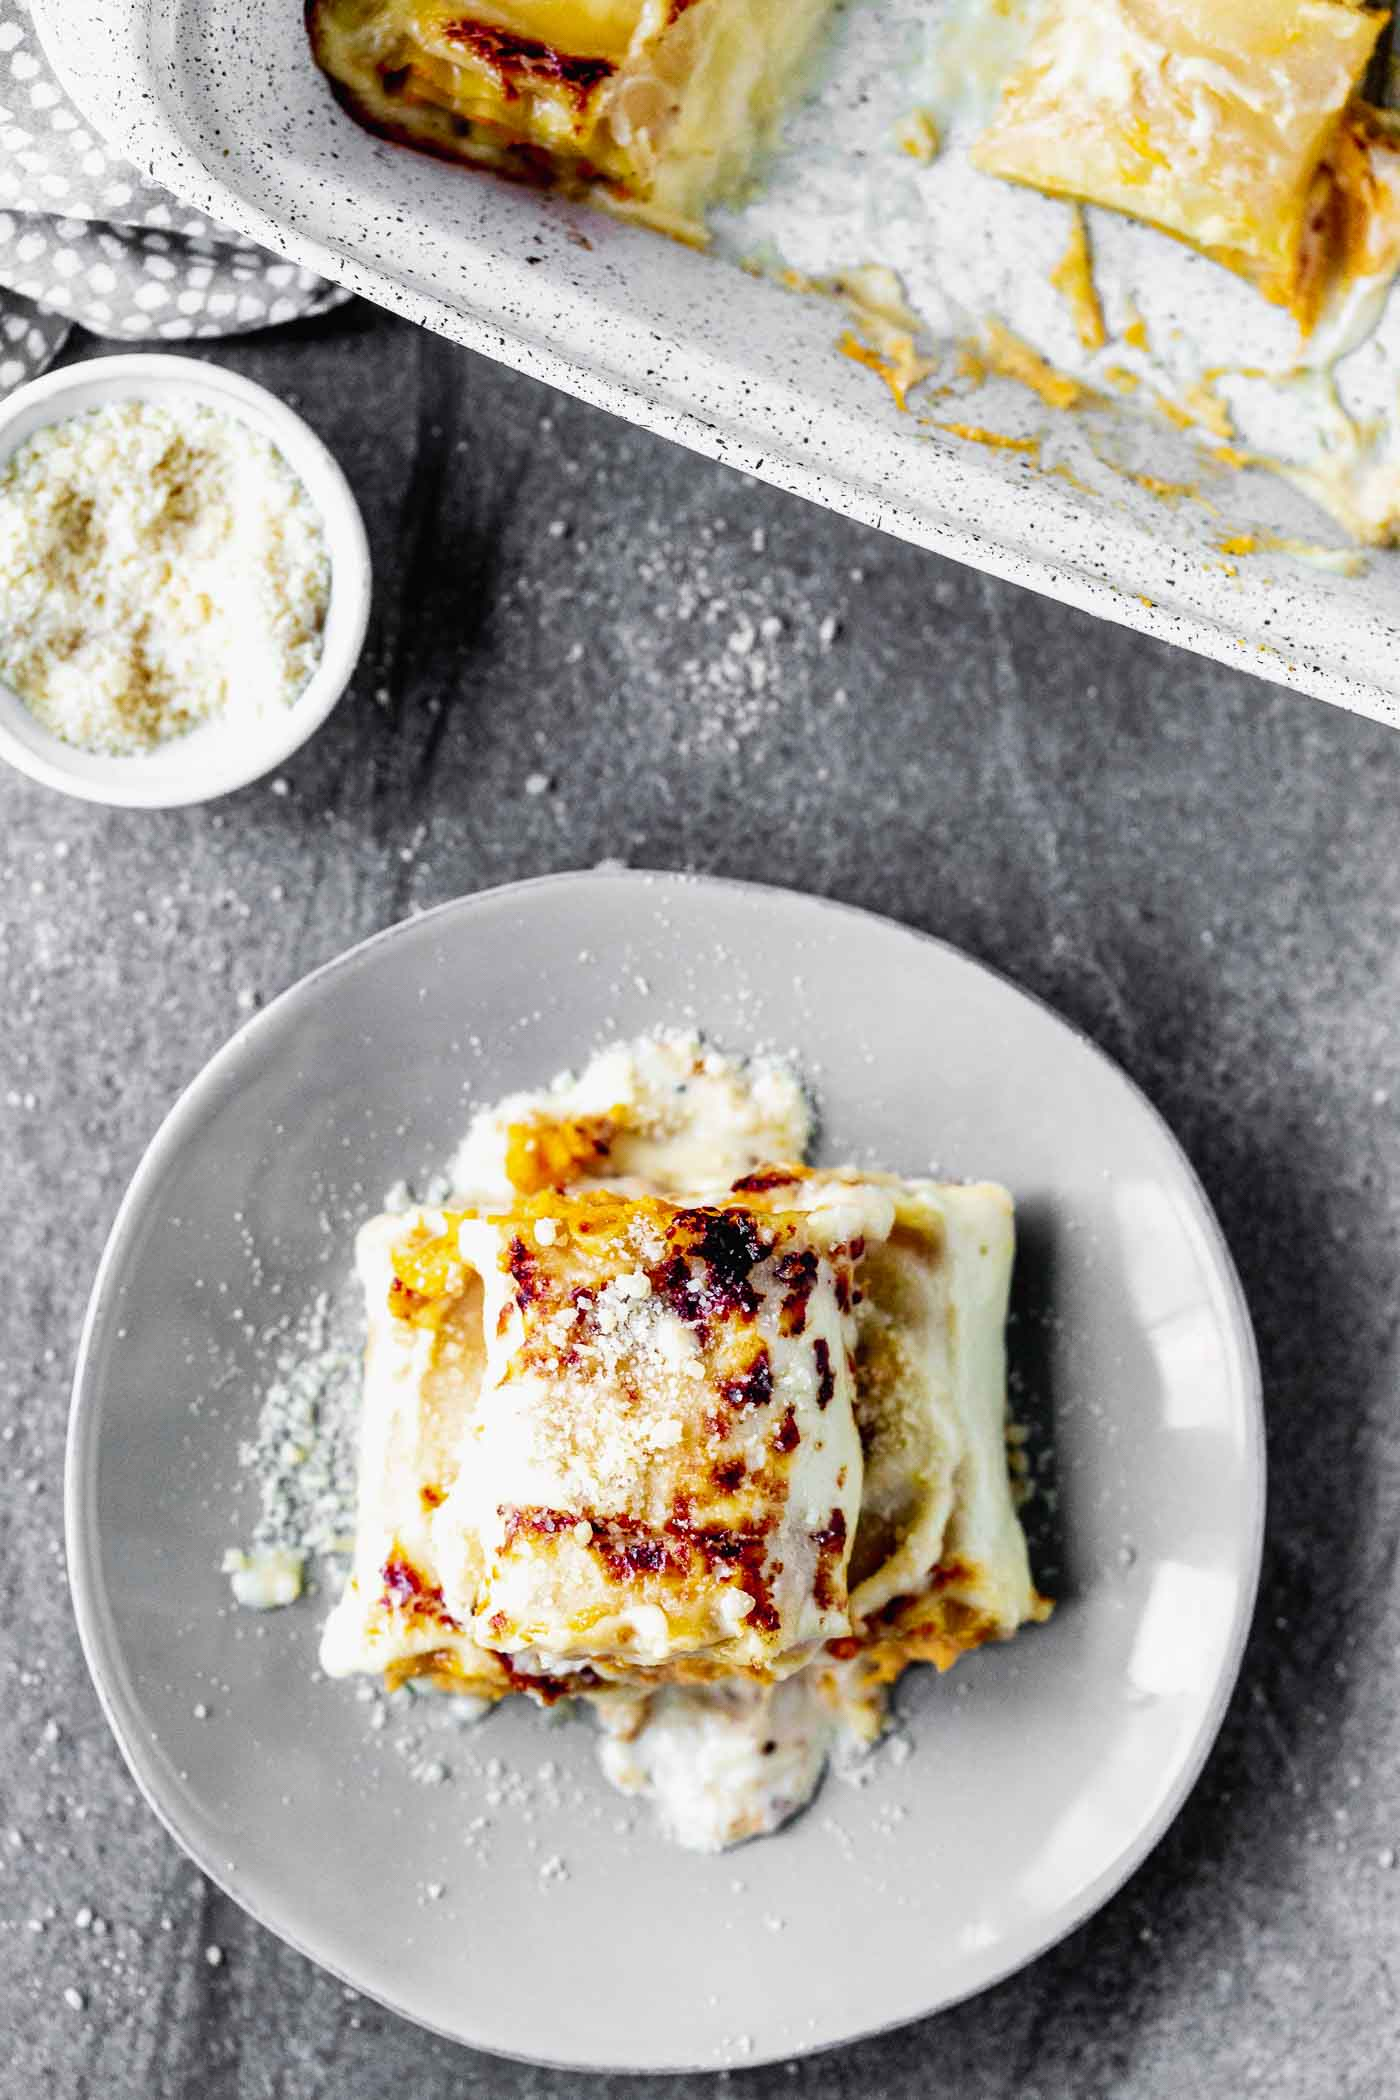 Butternut Squash Lasagna Rolls are cozy, rich and oh-so delicious. With only six ingredients, they're a cinch to throw together, and sure to impress a crowd.